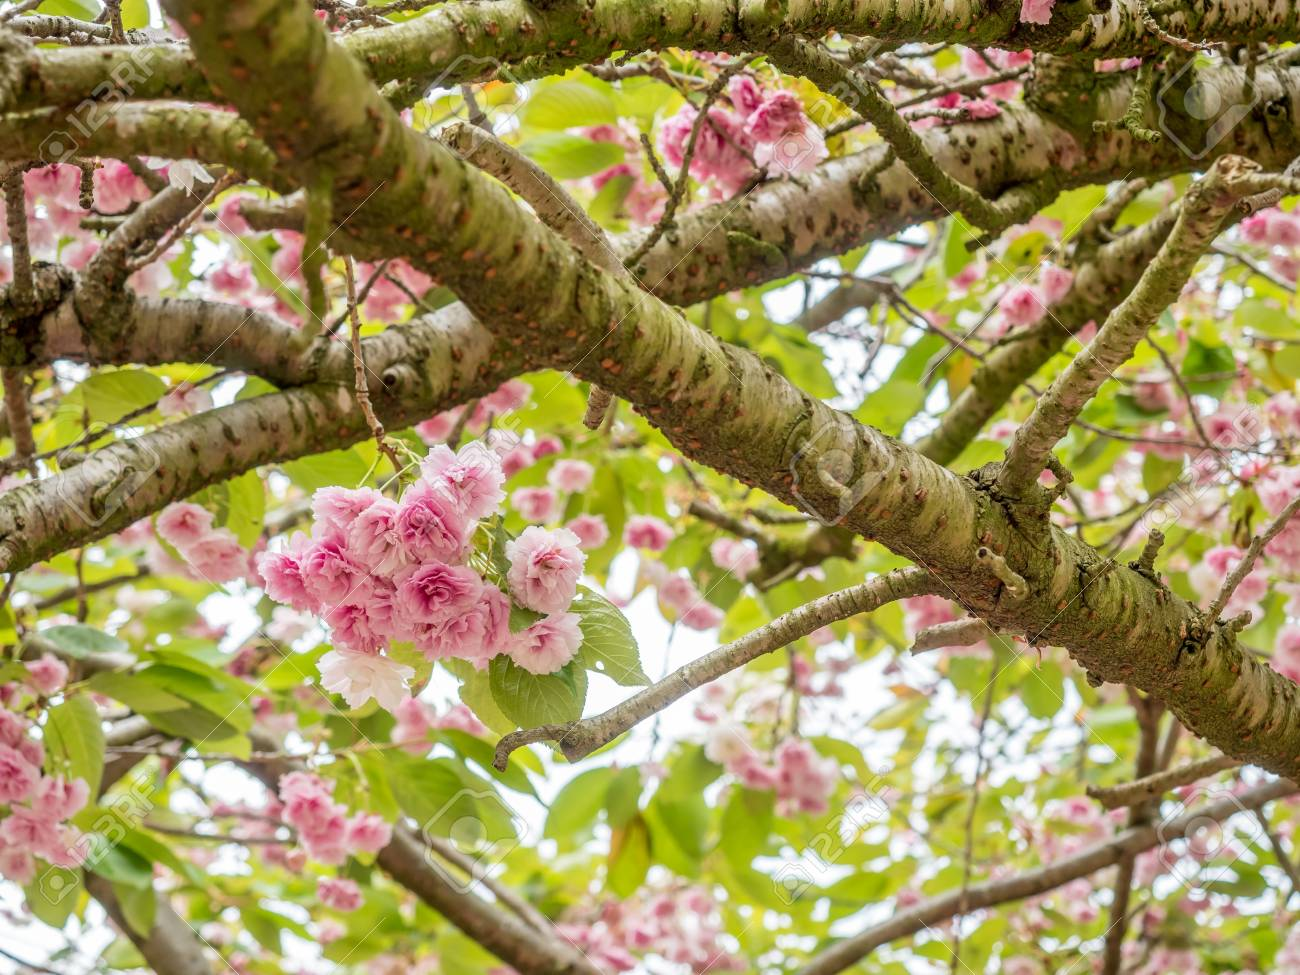 Pink Pedal Flowers On Tree And Green Grass In Outdoor Park With